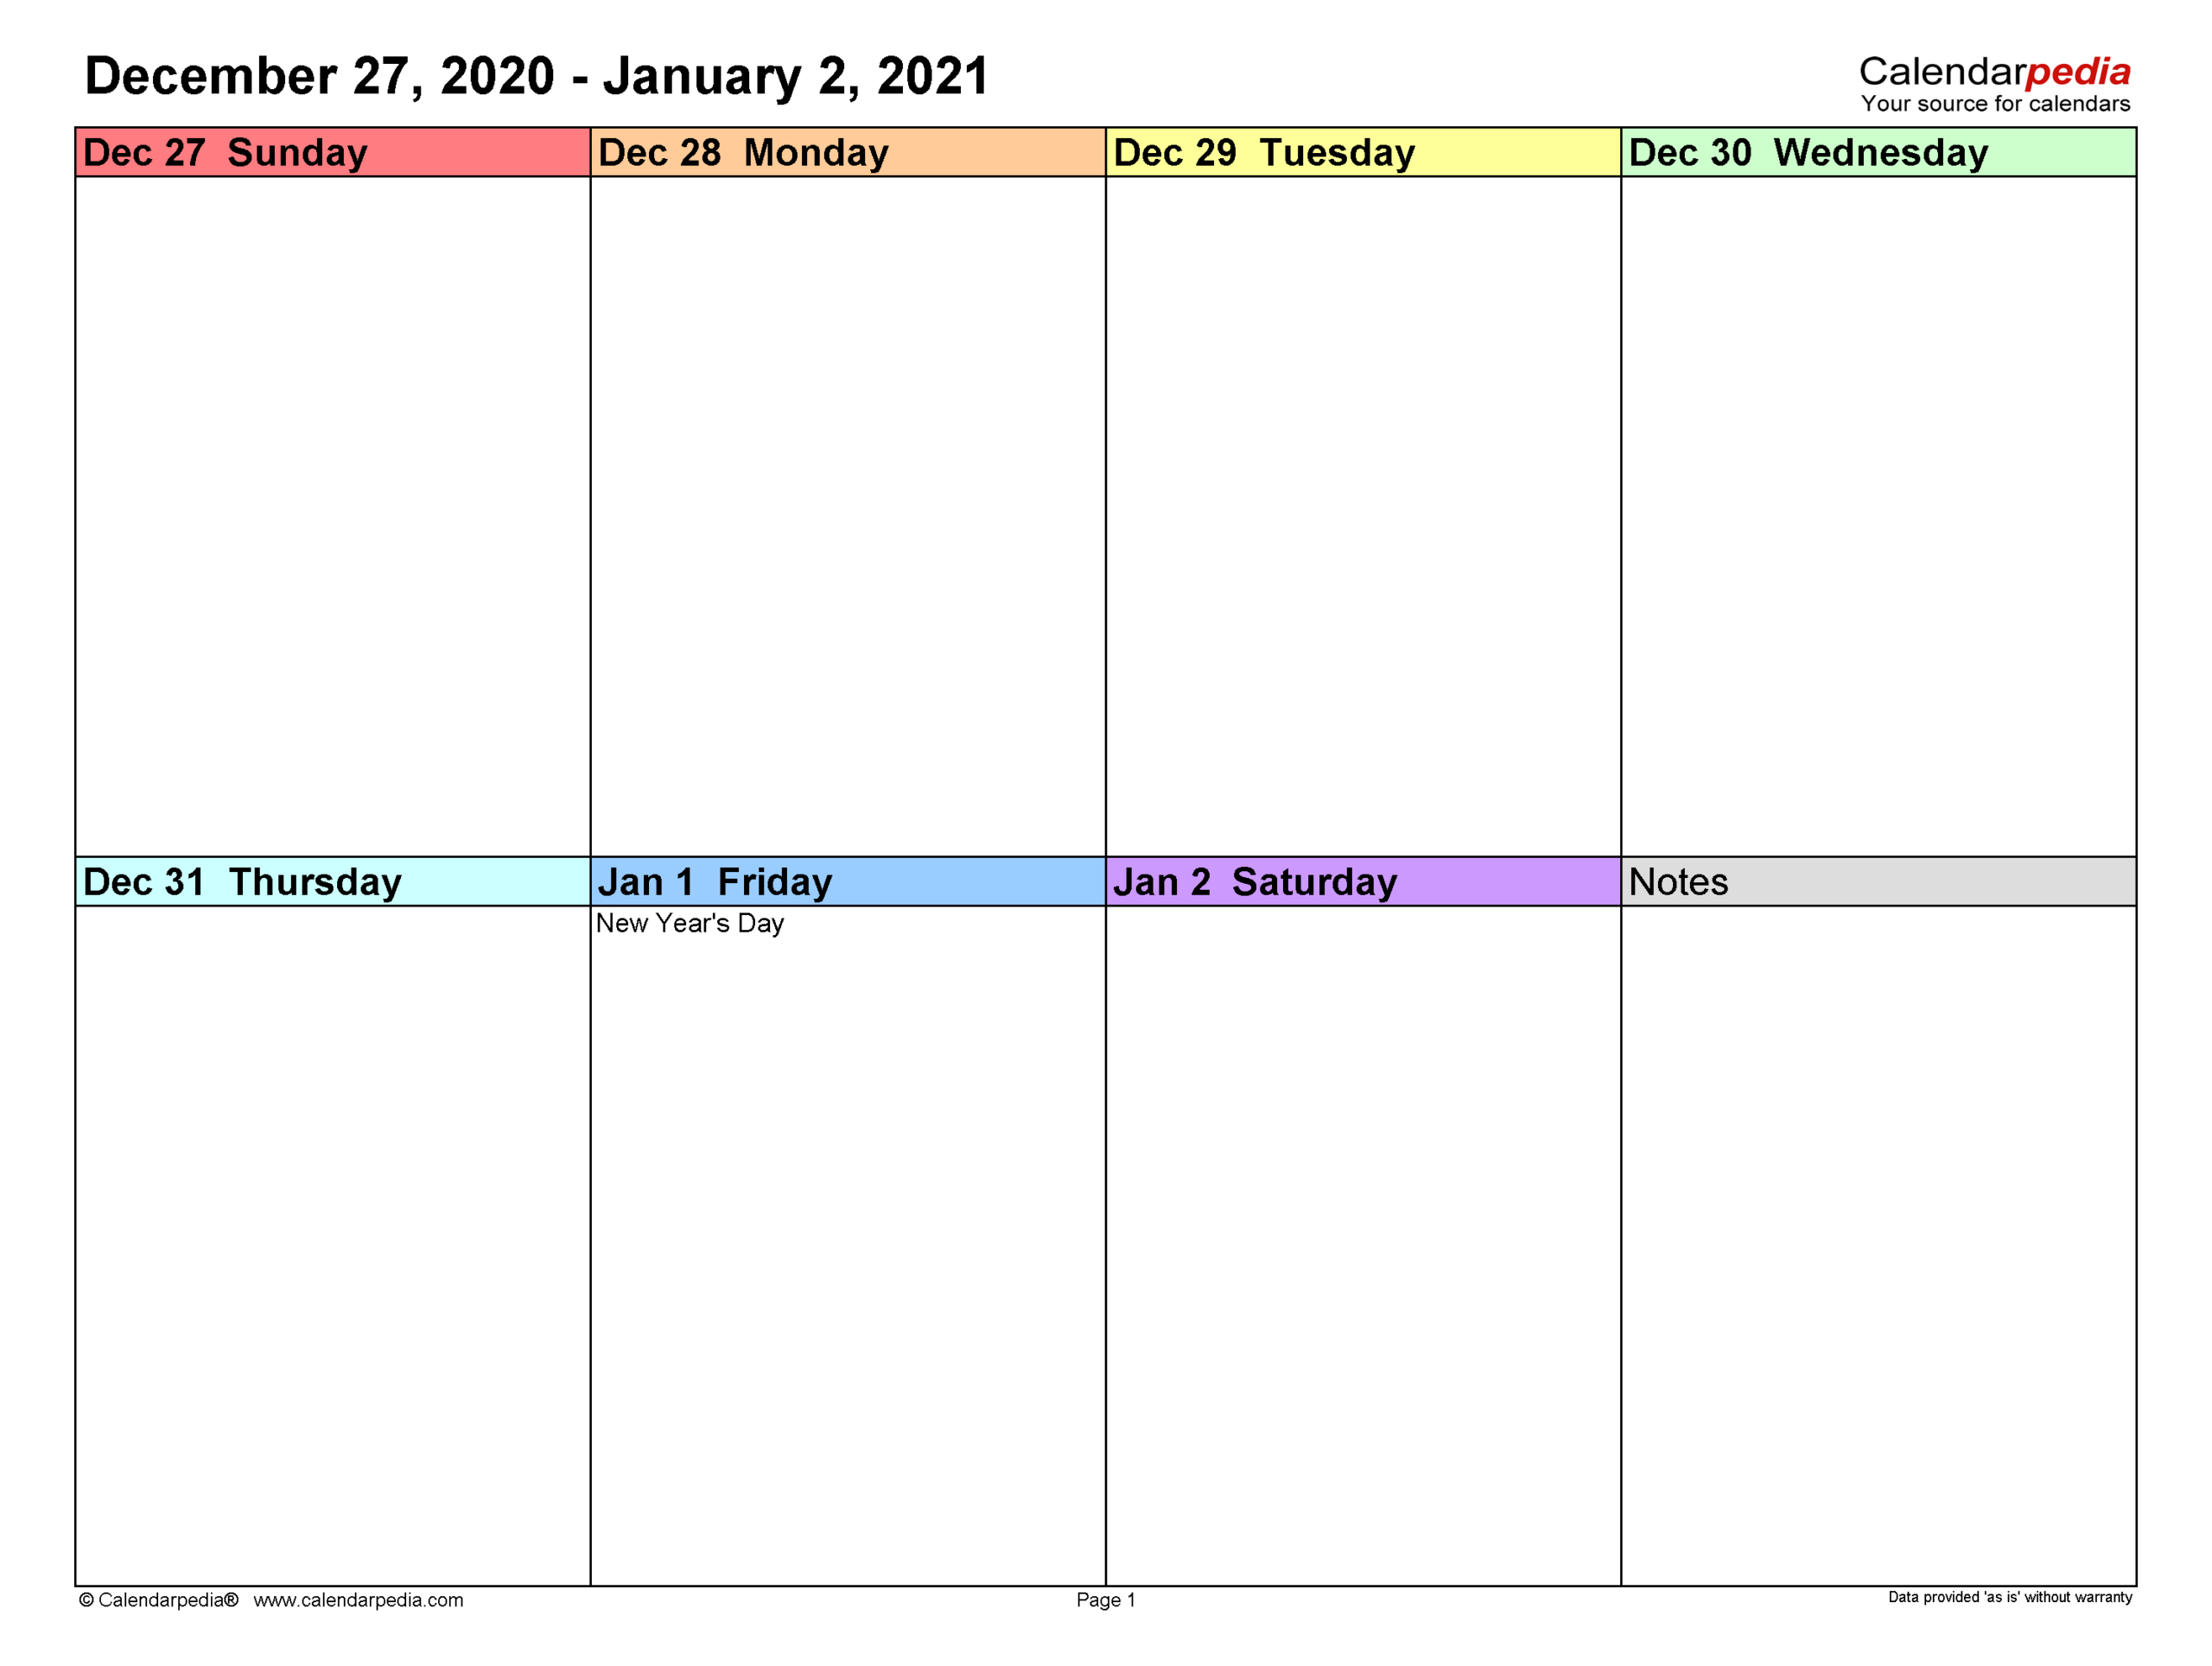 Weekly Calendars 2021 For Word - 12 Free Printable Templates inside 2021 Fill-In Calendar